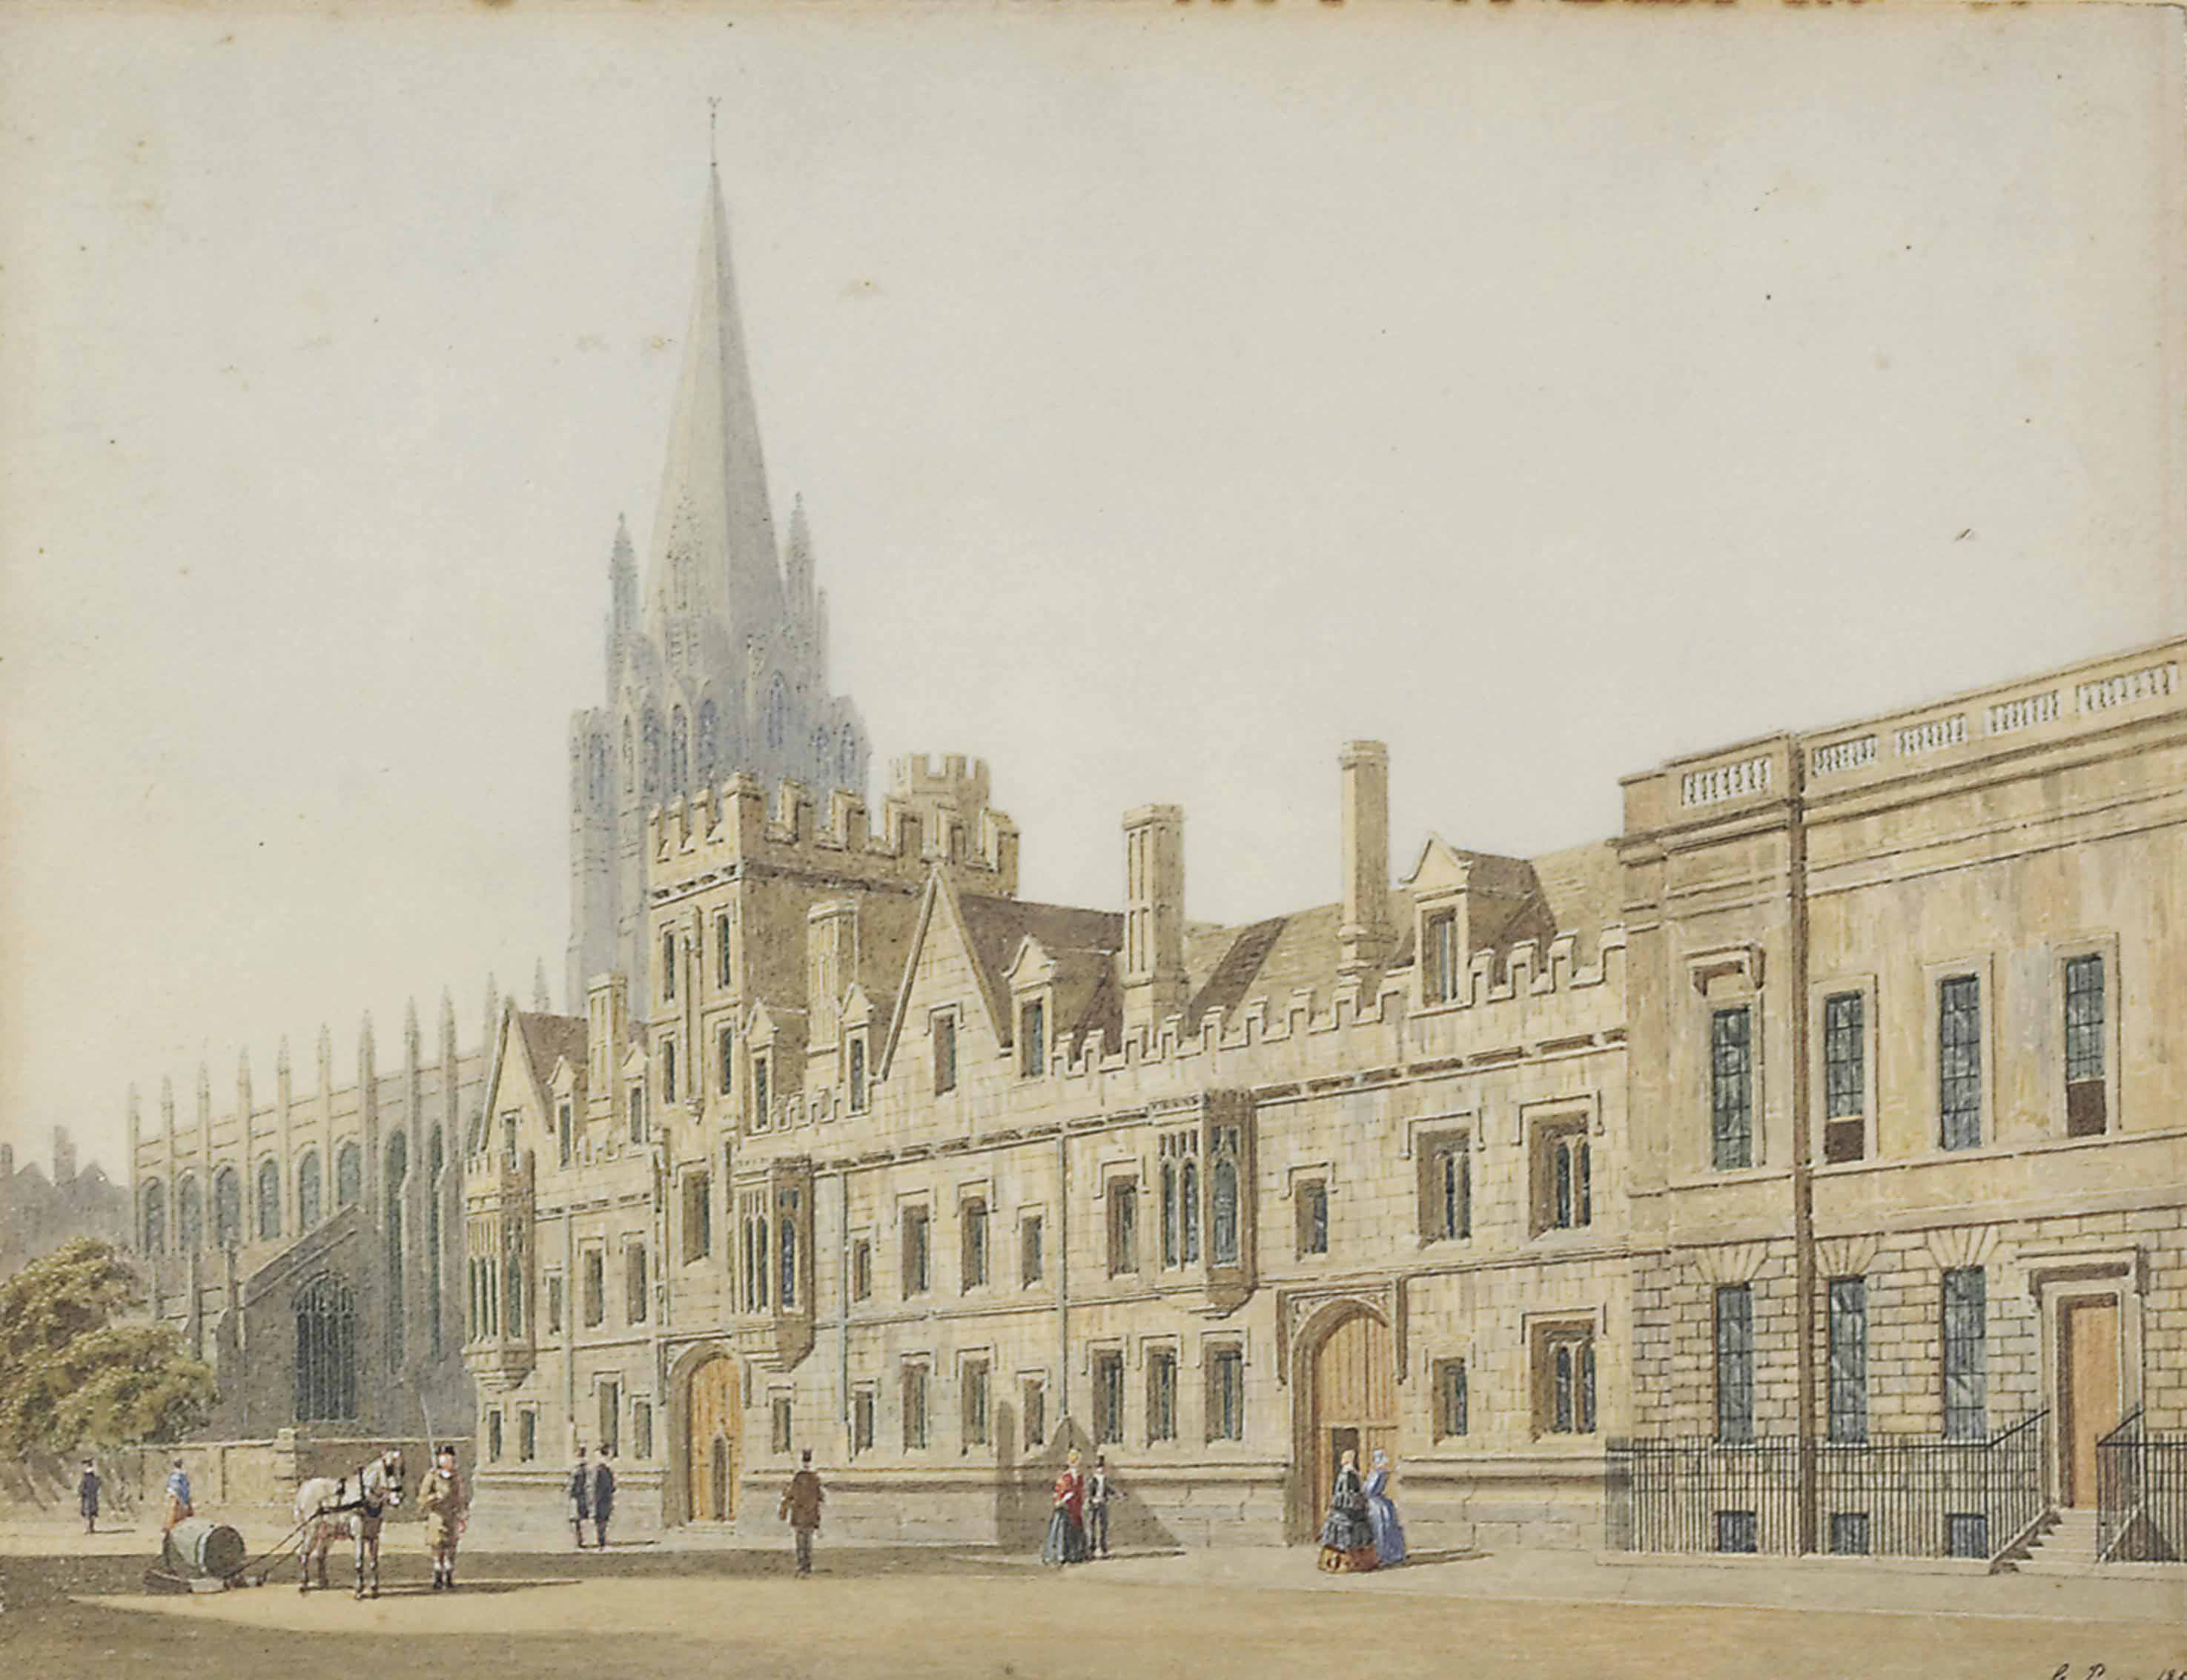 All Souls College and St Mary's Church, Oxford